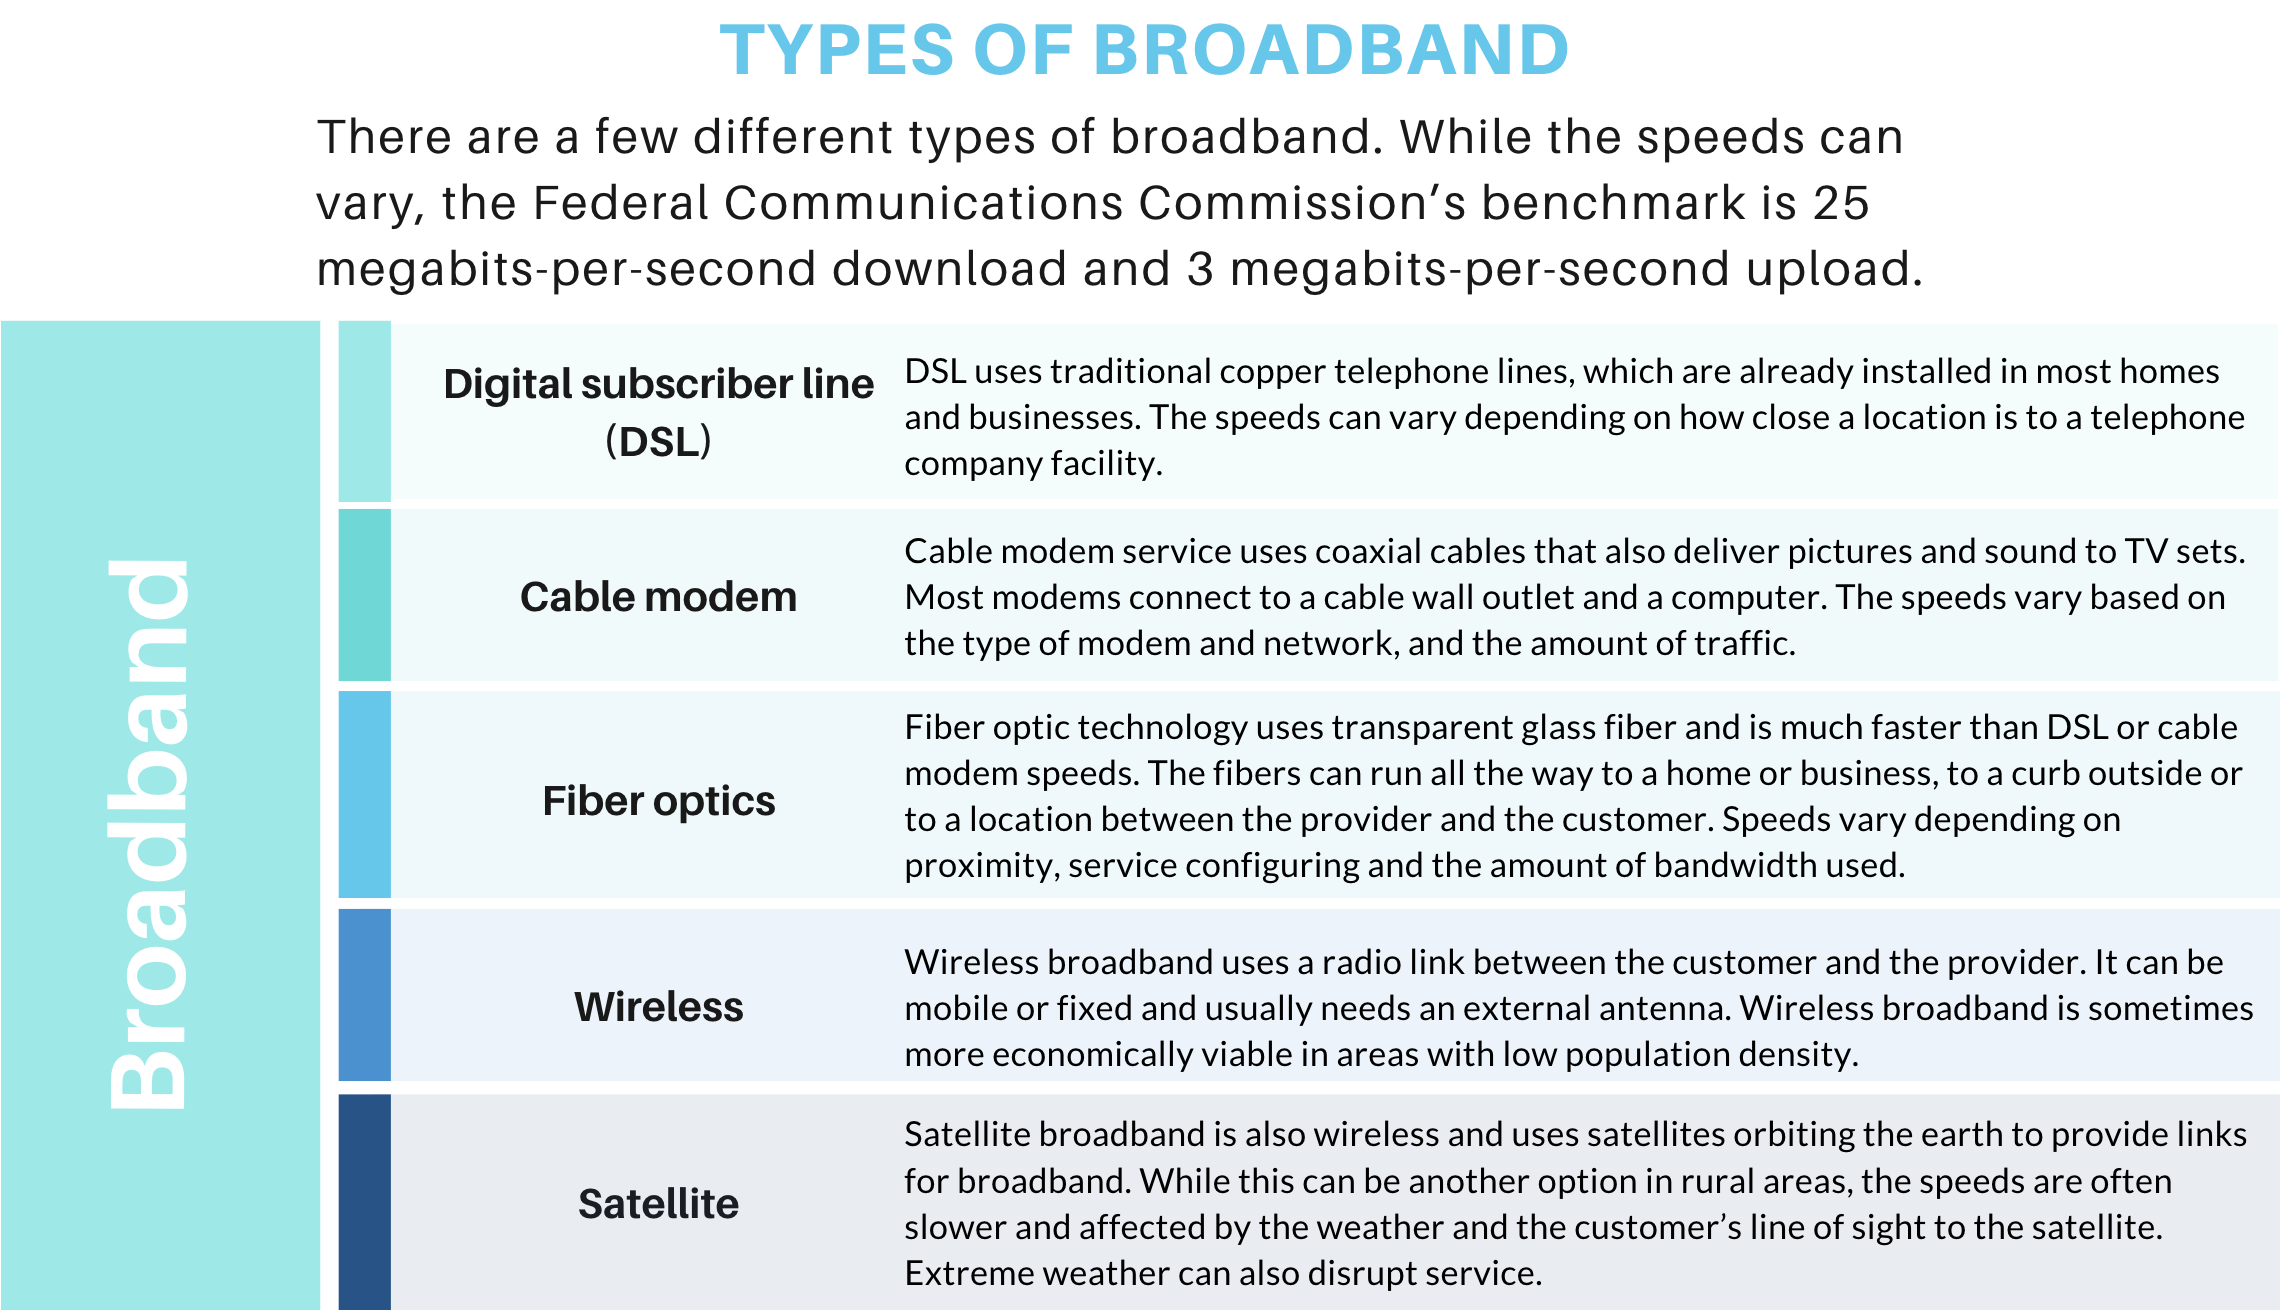 Types of Broadband chart